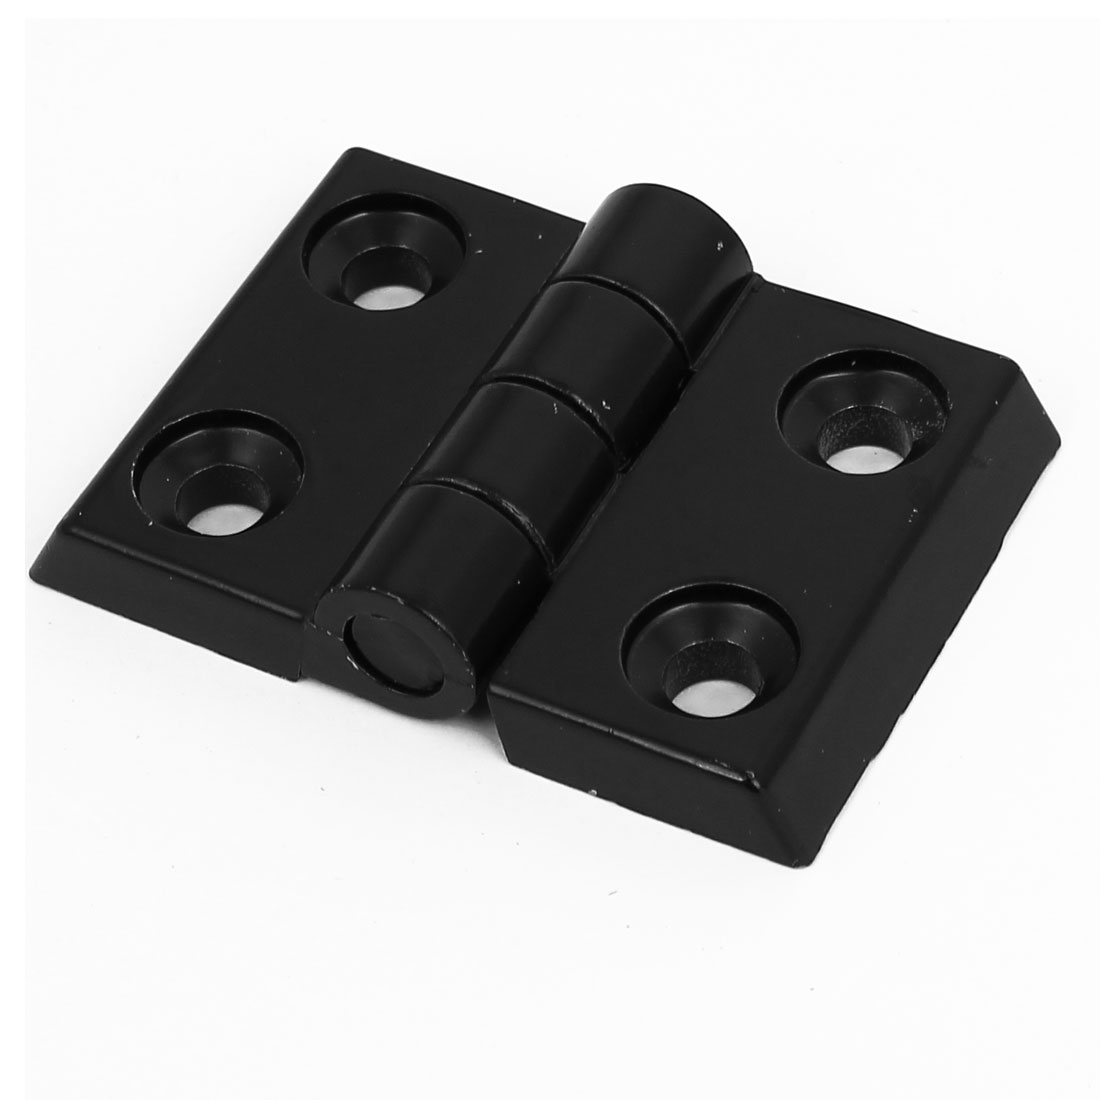 40mm x 25mm Rotatable Reinforced Zinc Alloy Bearing Butt Hinge Black for Gates Doors